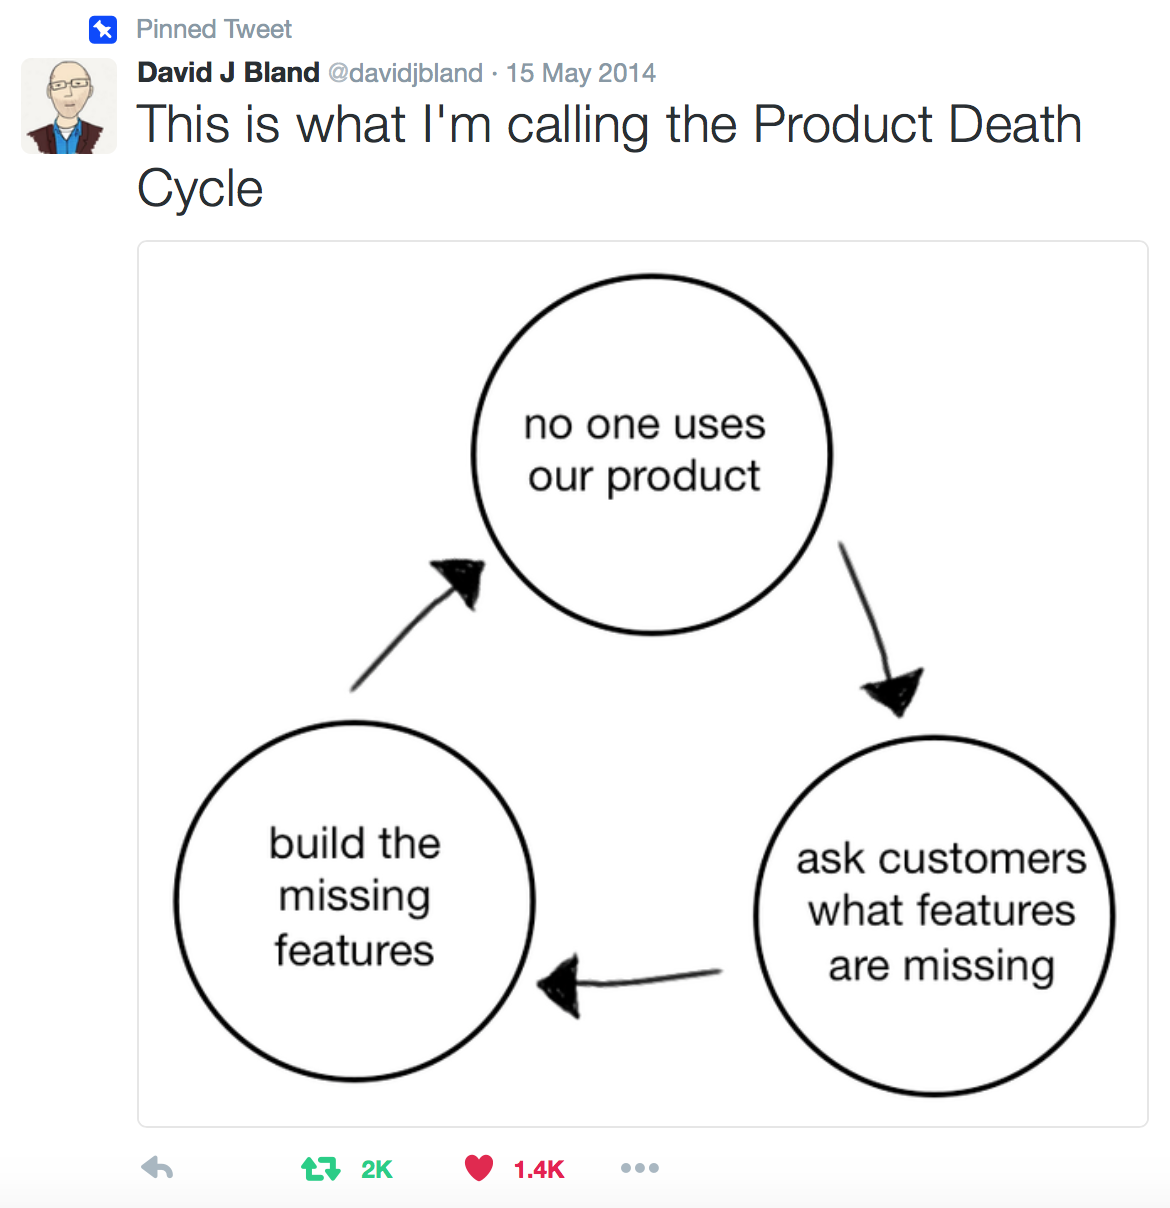 the product death cycle